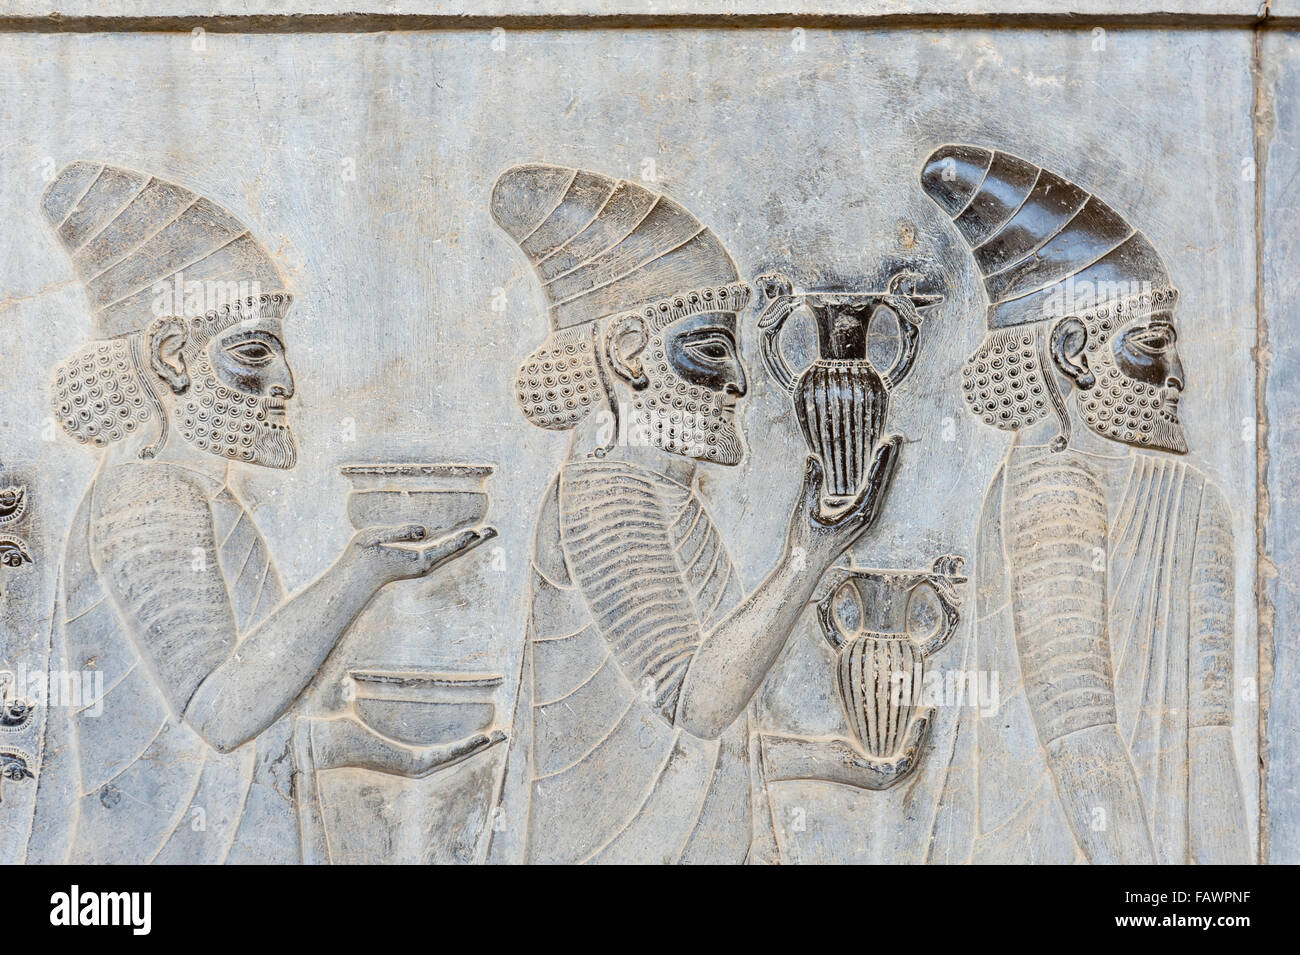 Ancient relief of the Achaemenids, Delegation of the Lydians, Apadana Palace, archaeological site - Stock Image